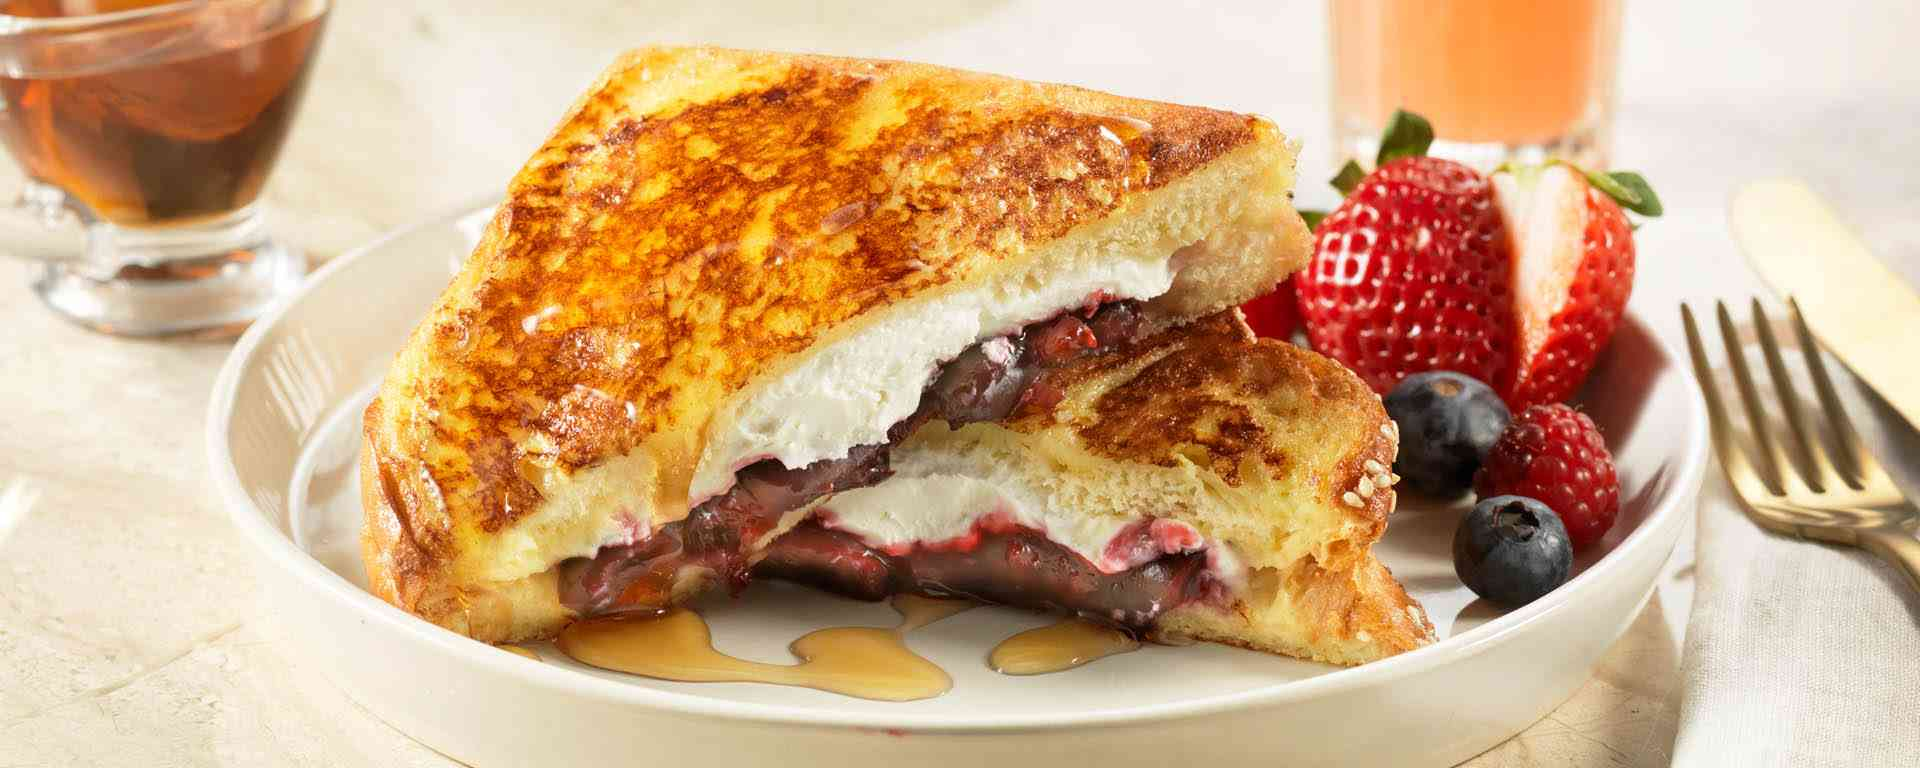 Photo for - French Toast Stuffed with Soft Goat Cheese